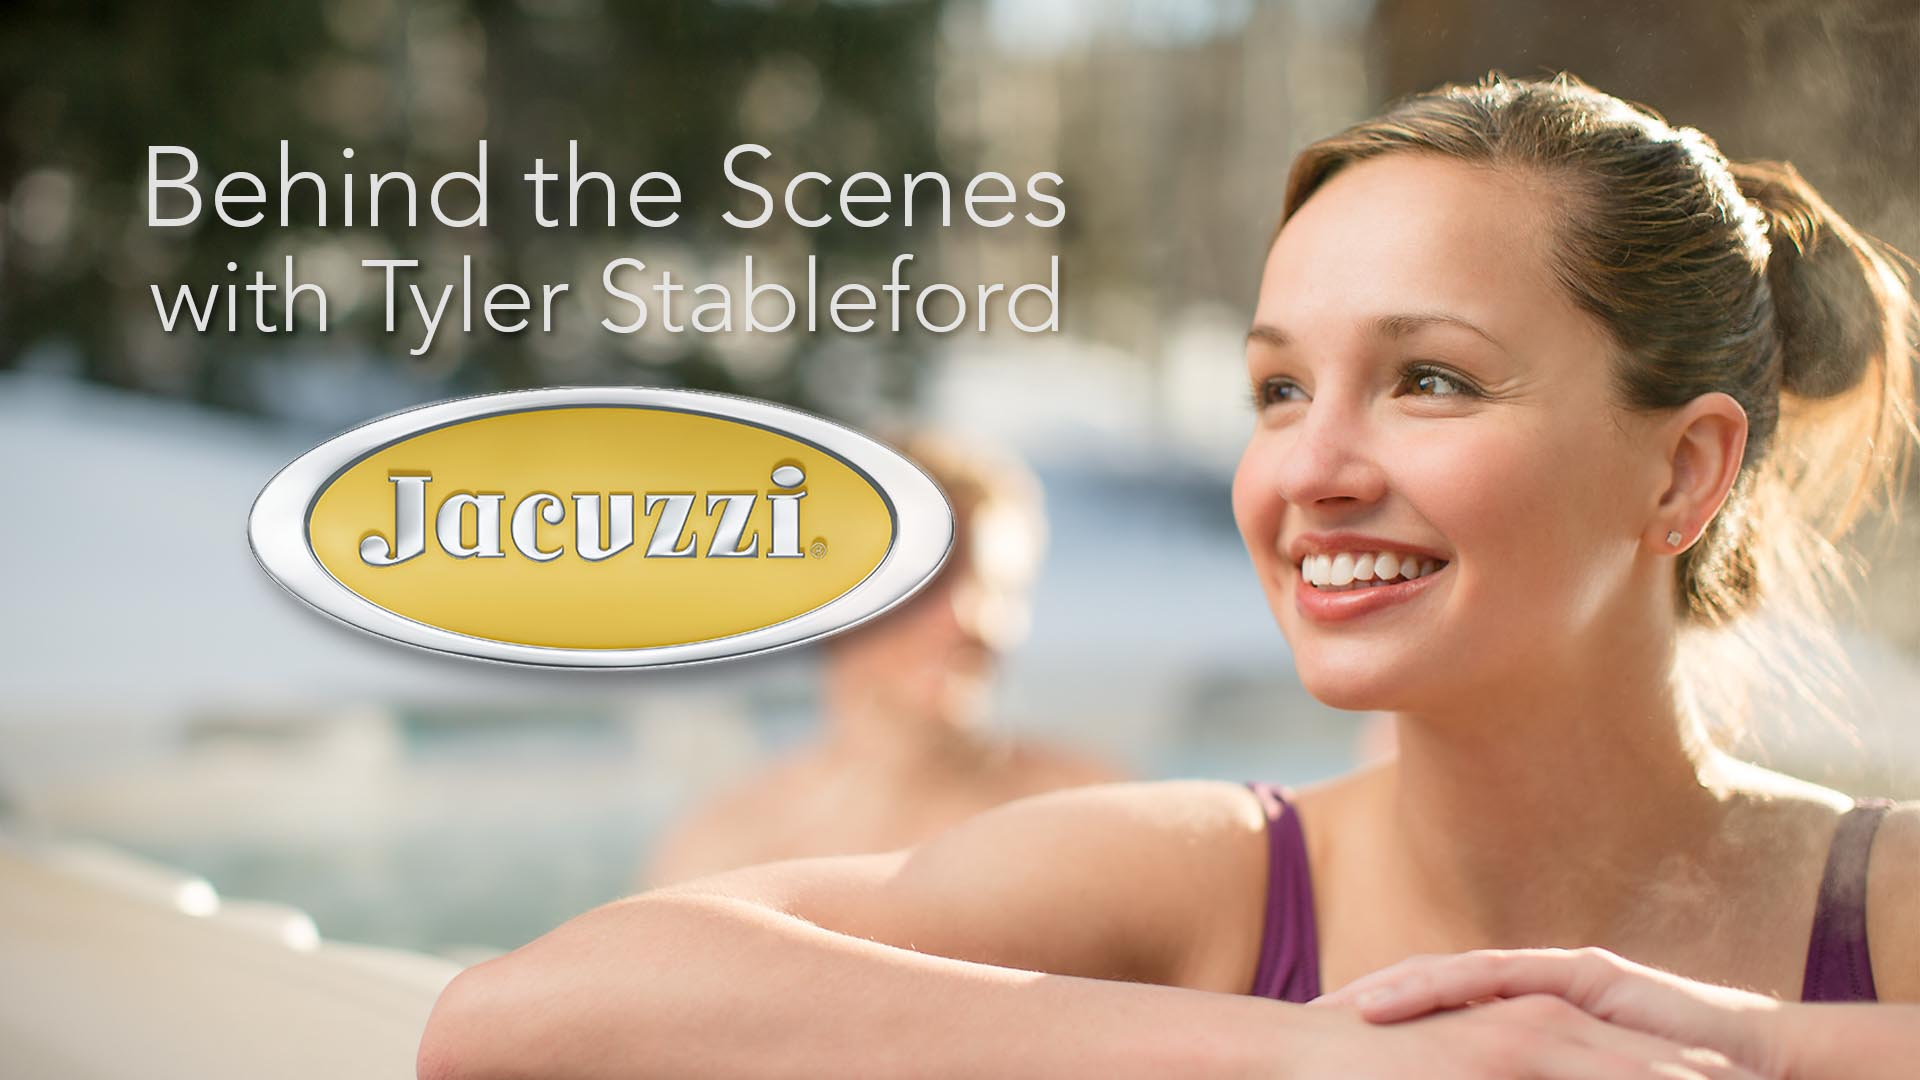 jacuzzi photo shoot